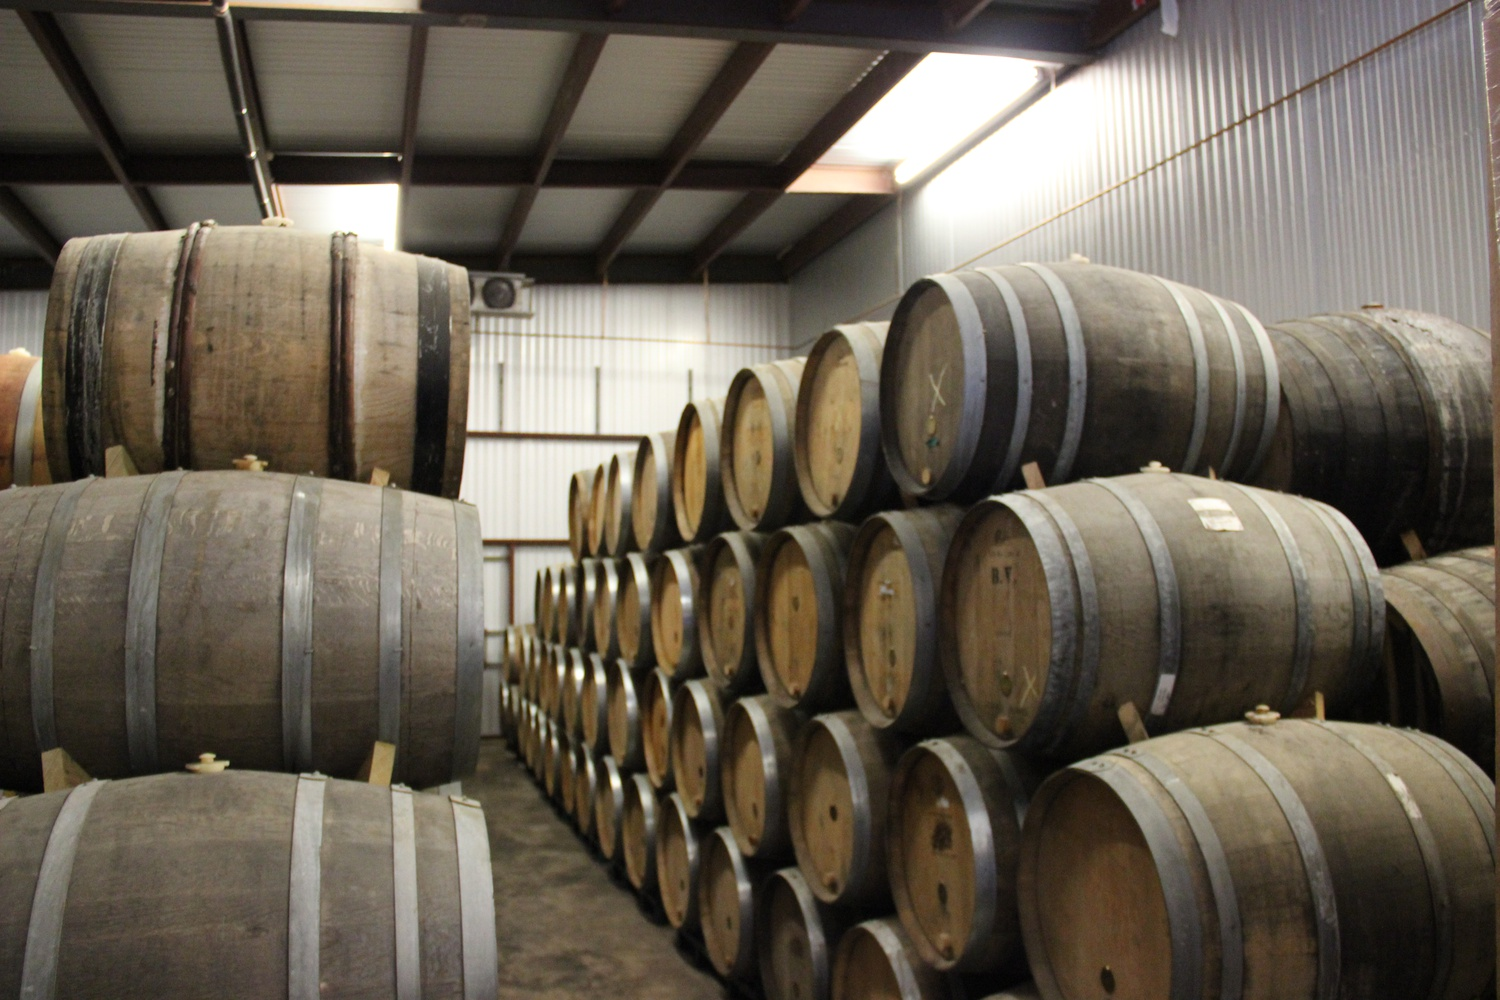 I also took a tour of Jester King Brewery in the outskirts of Austin, Texas. Their barrel room houses unique fermented beers that are undergoing an aging process.